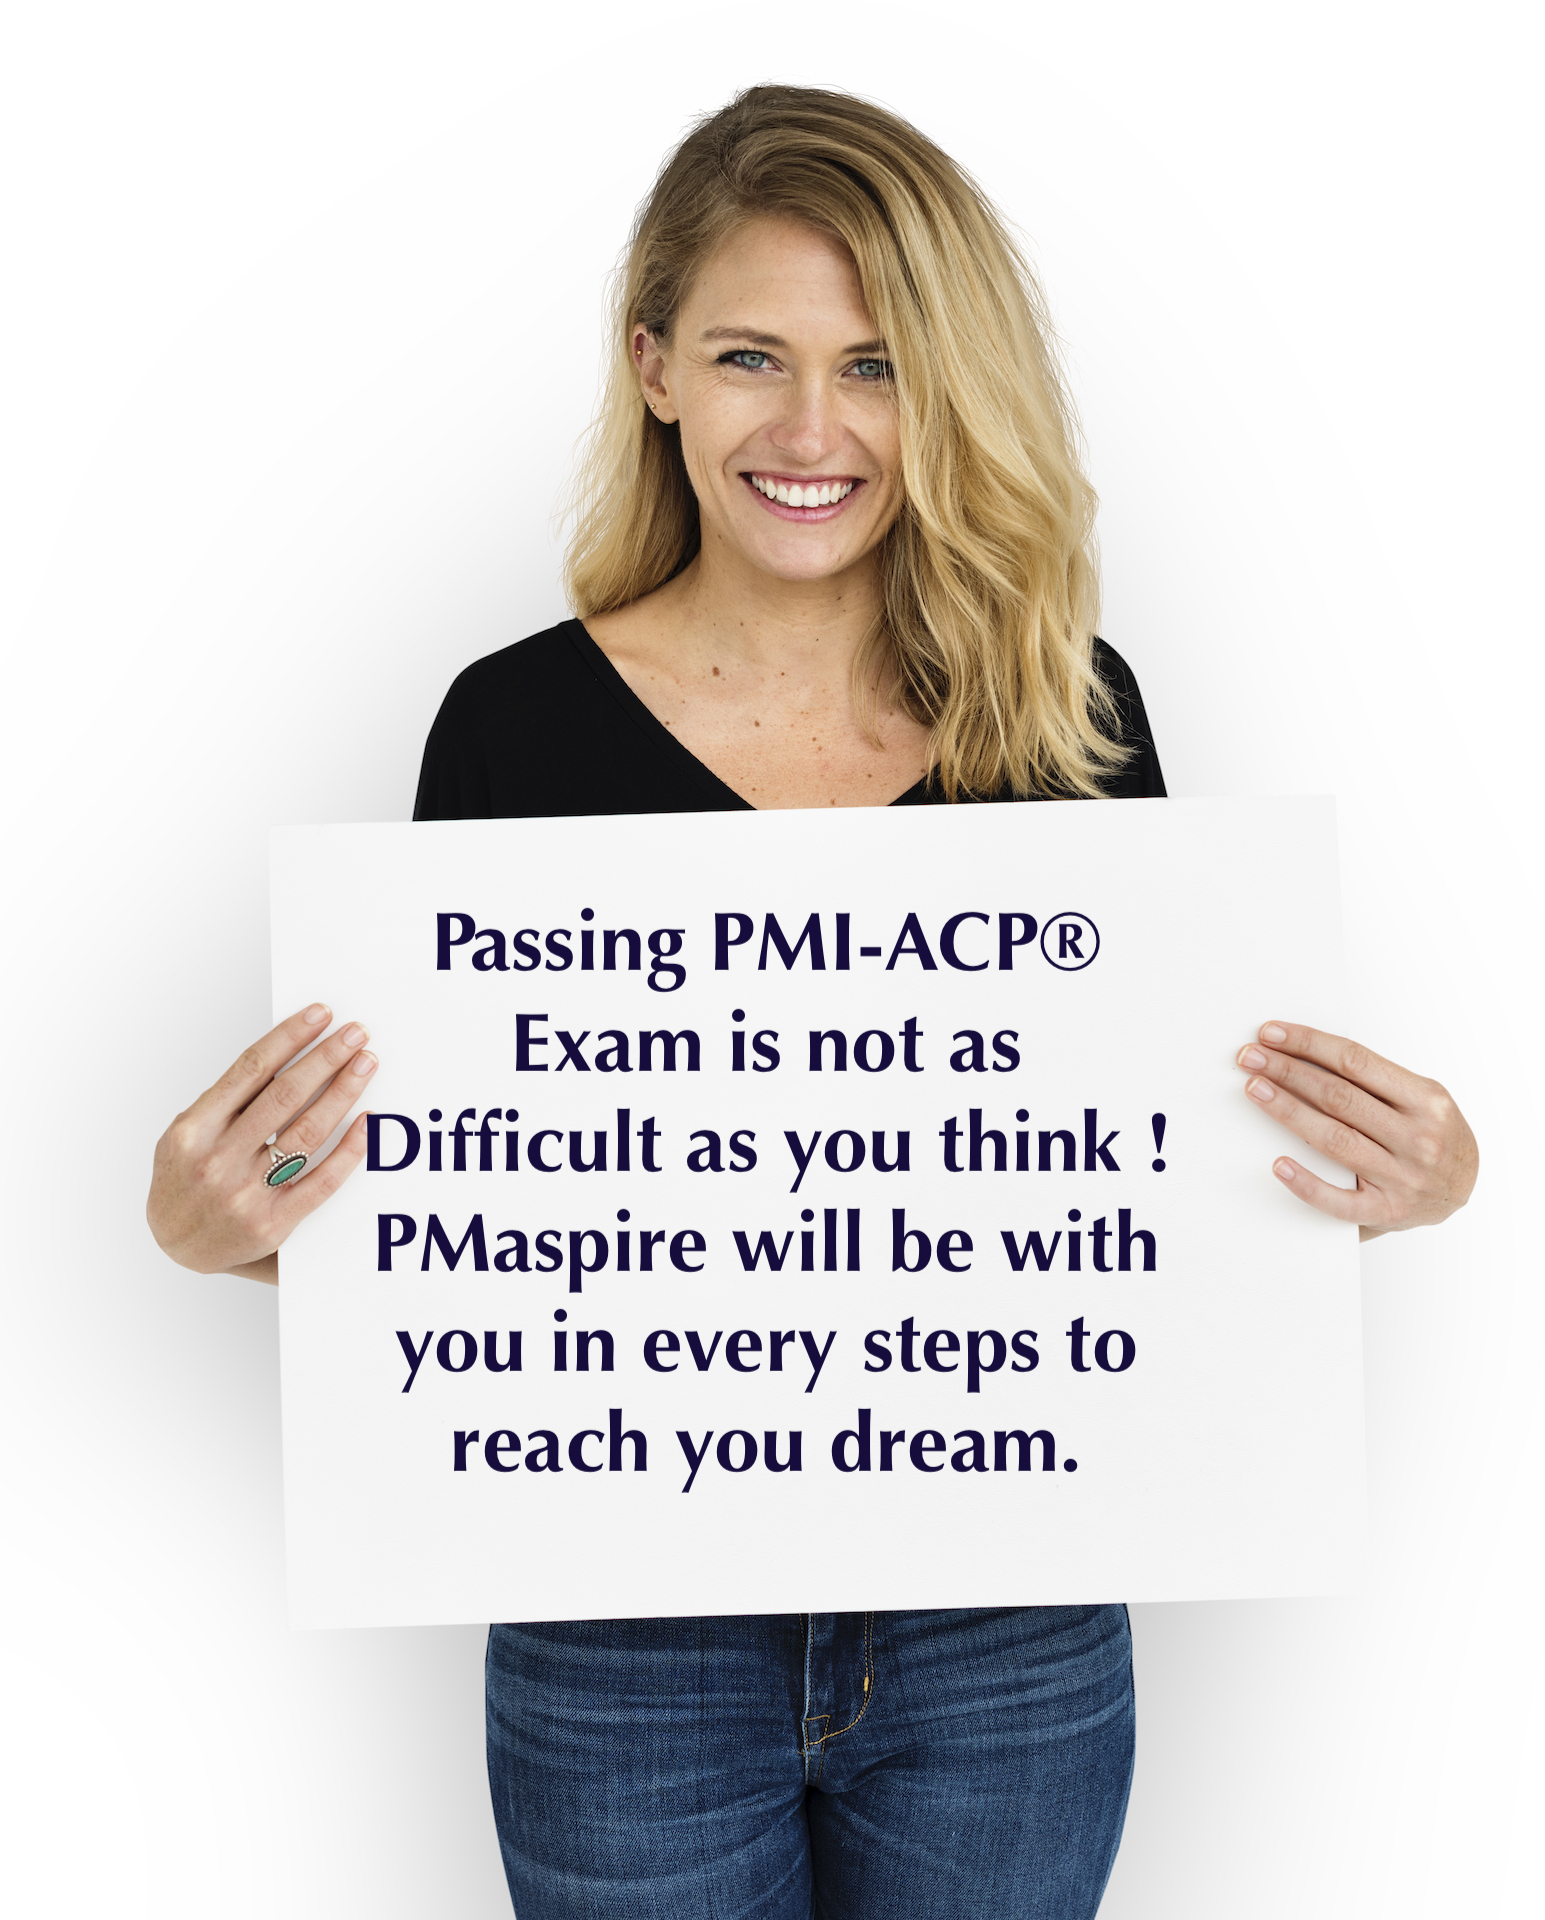 Pass PMI-ACP exam